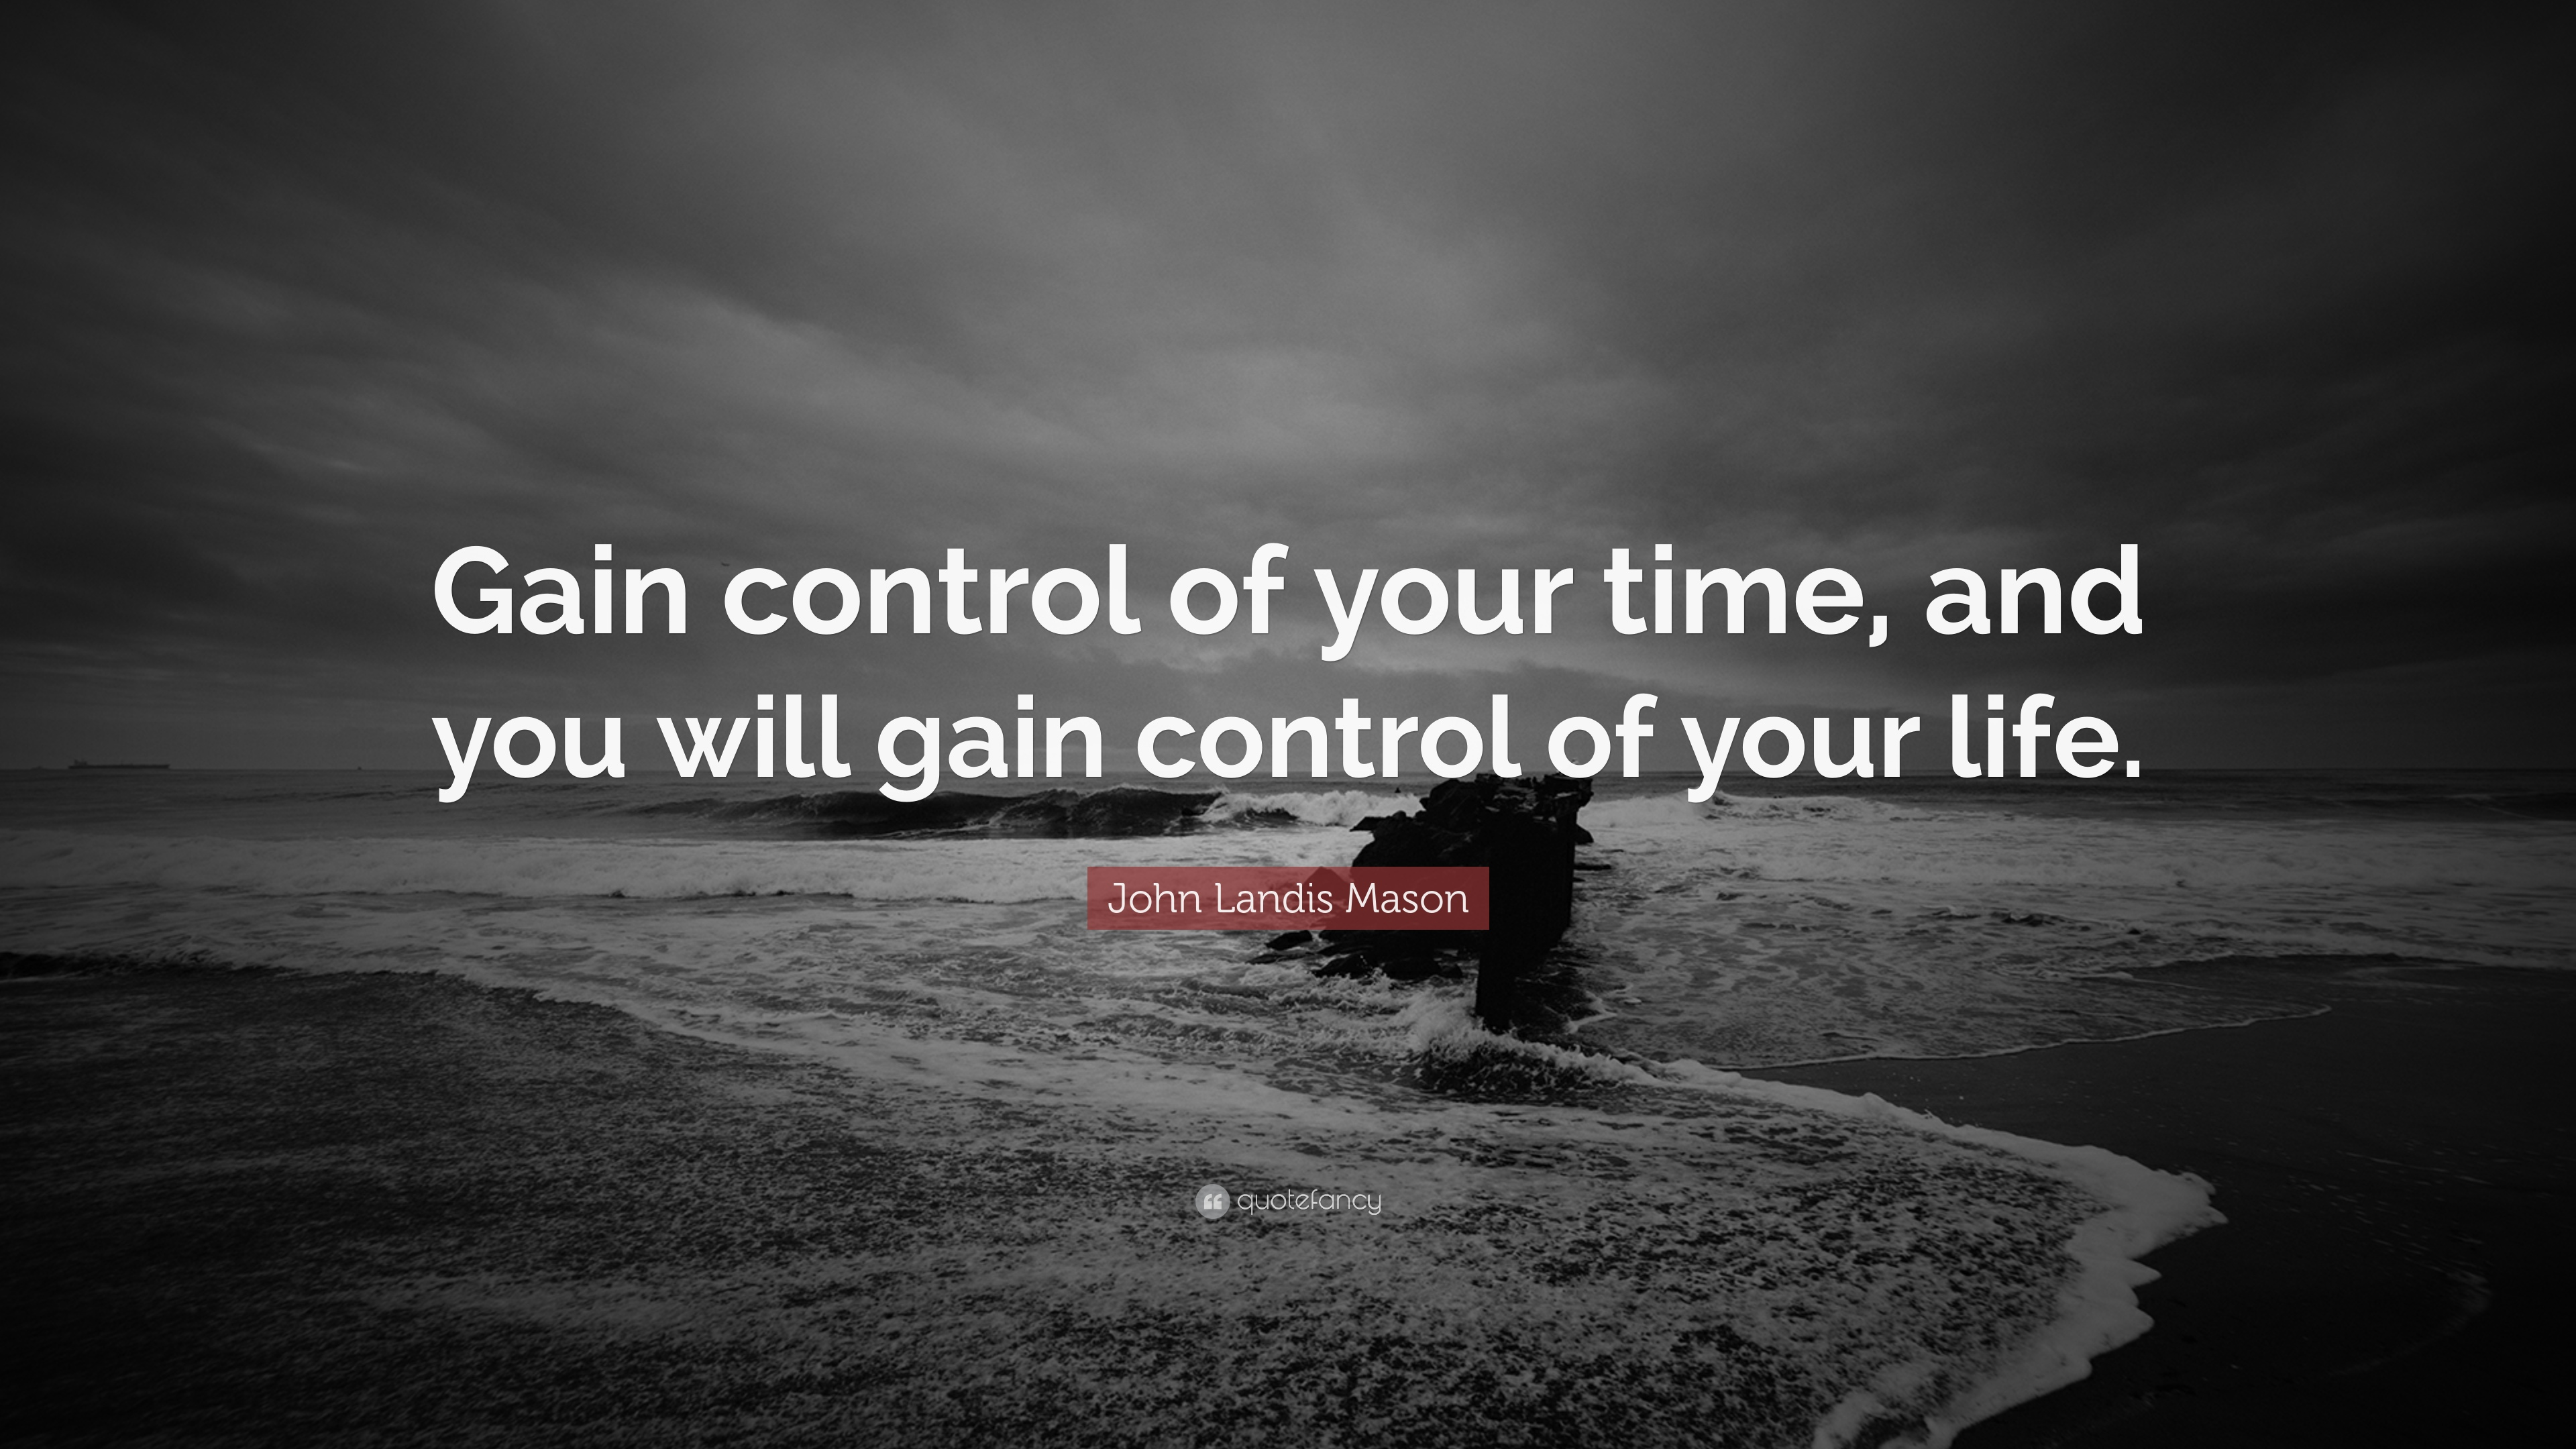 John Landis Mason Quote Gain Control Of Your Time And You Will